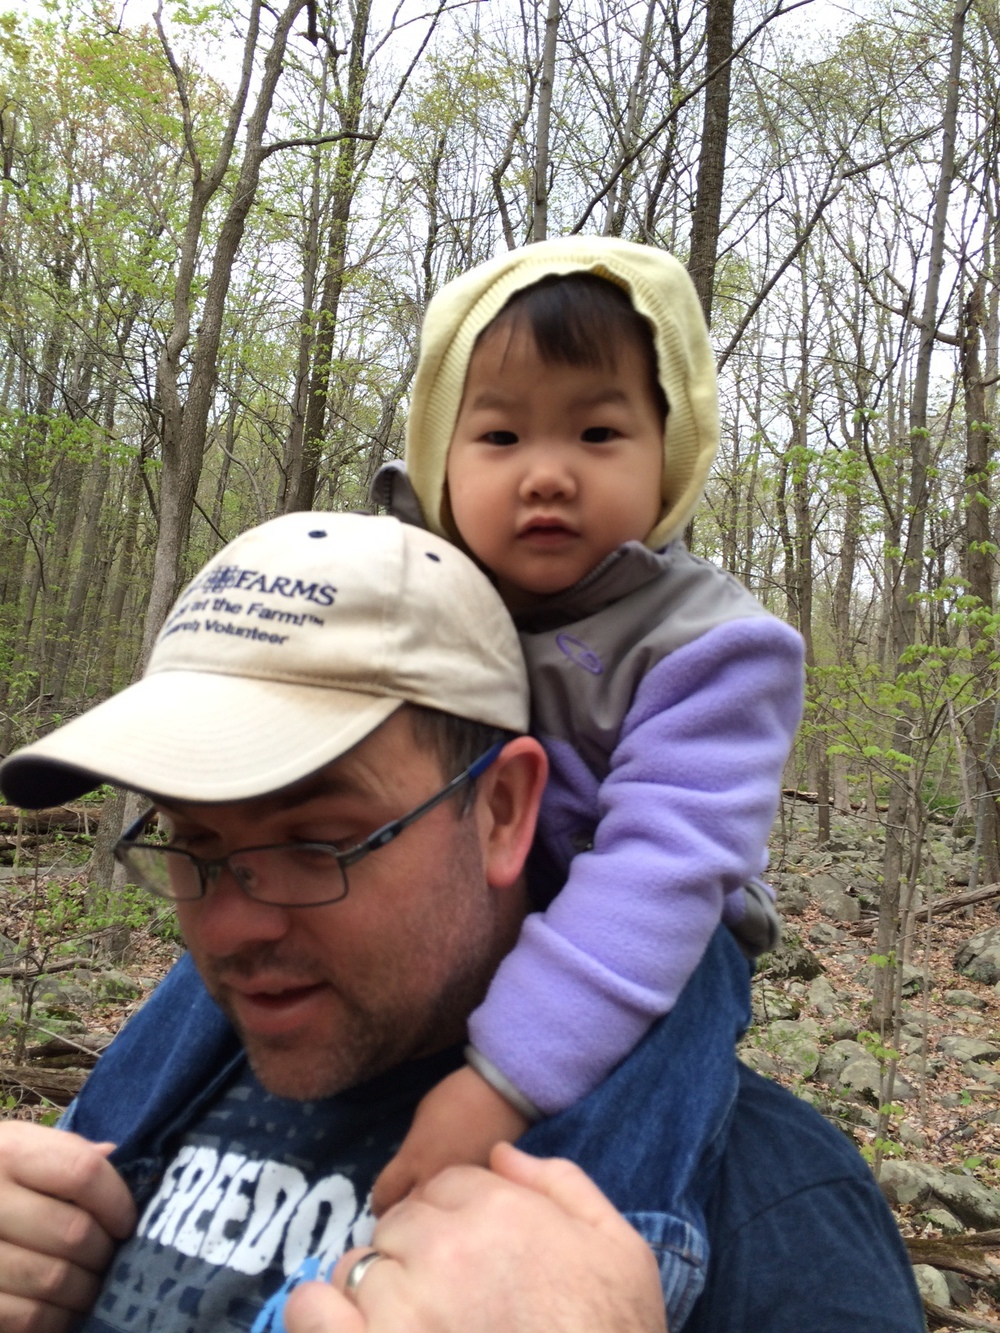 Finally got her up on daddy's shoulders for a hike through the woods.  She was so scared the first 5 times we've tried this!!  Yea, another success!